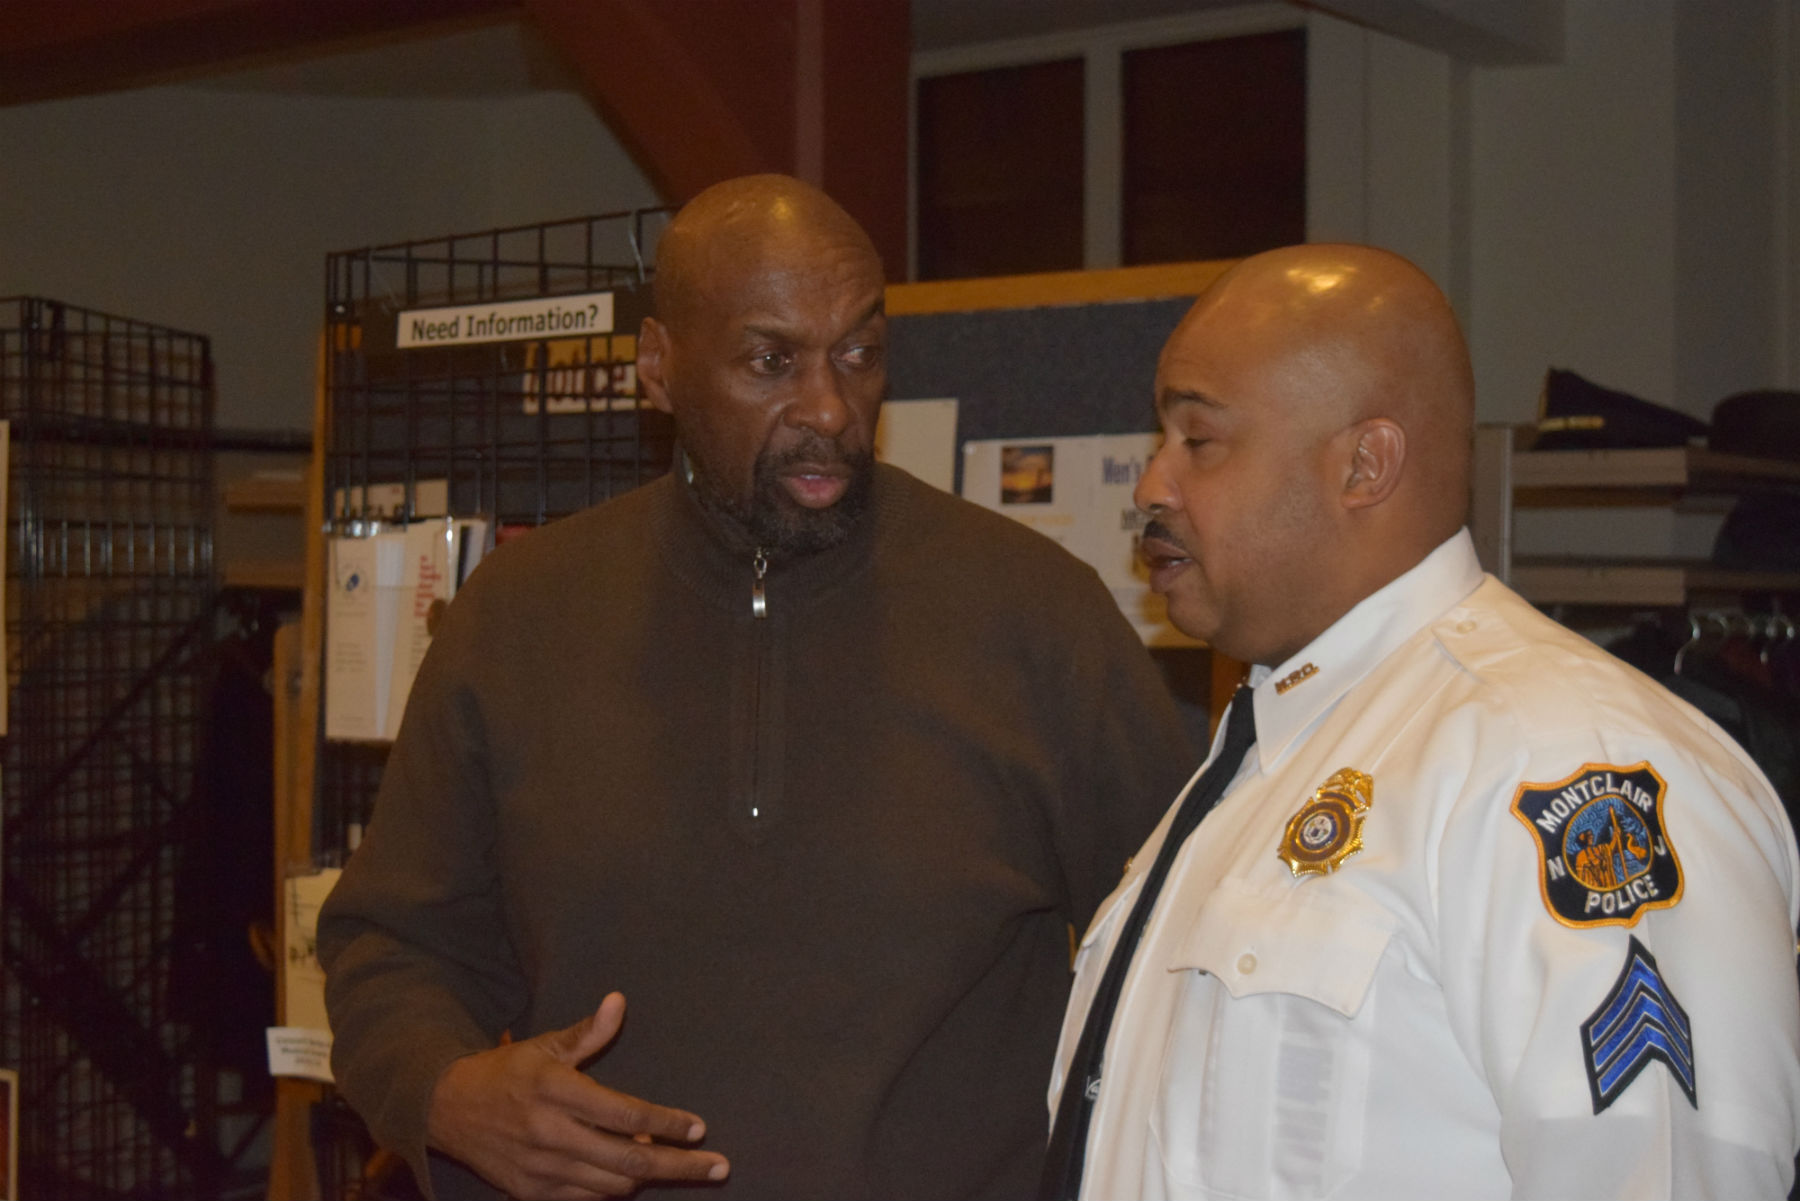 Top Montclair Leaders Assemble to Approach Positive Community Policing Practices